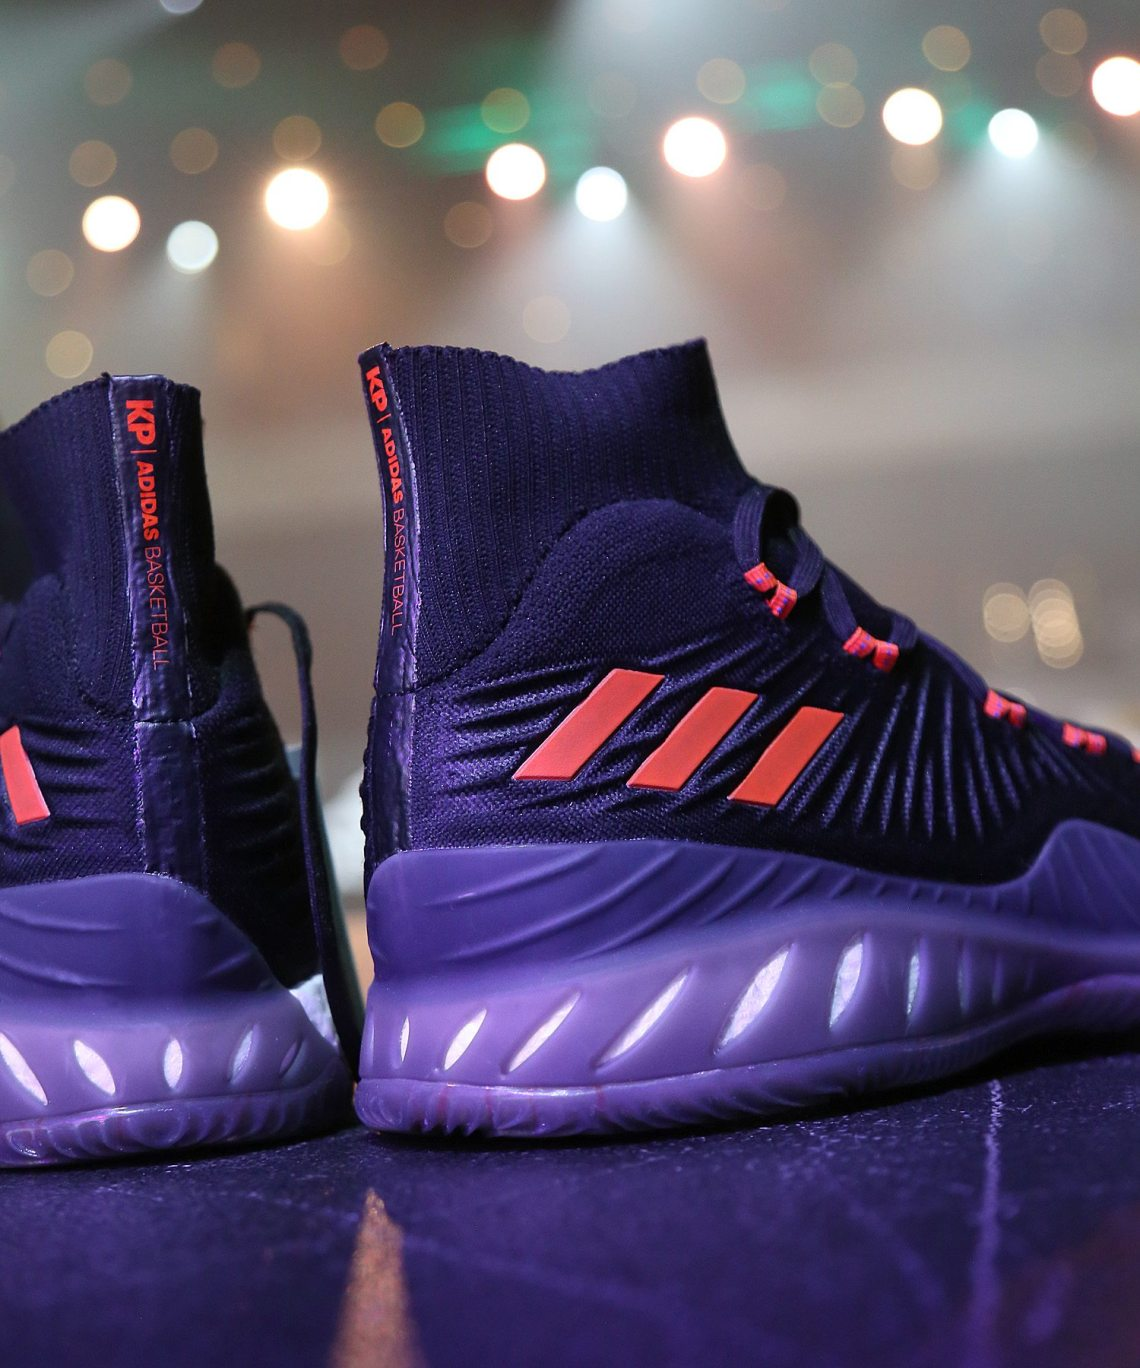 timeless design 89368 e31b9 For more on the new Crazy Explosive 17, check out our in-depth interview  with adidas designer Jesse Rademacher.